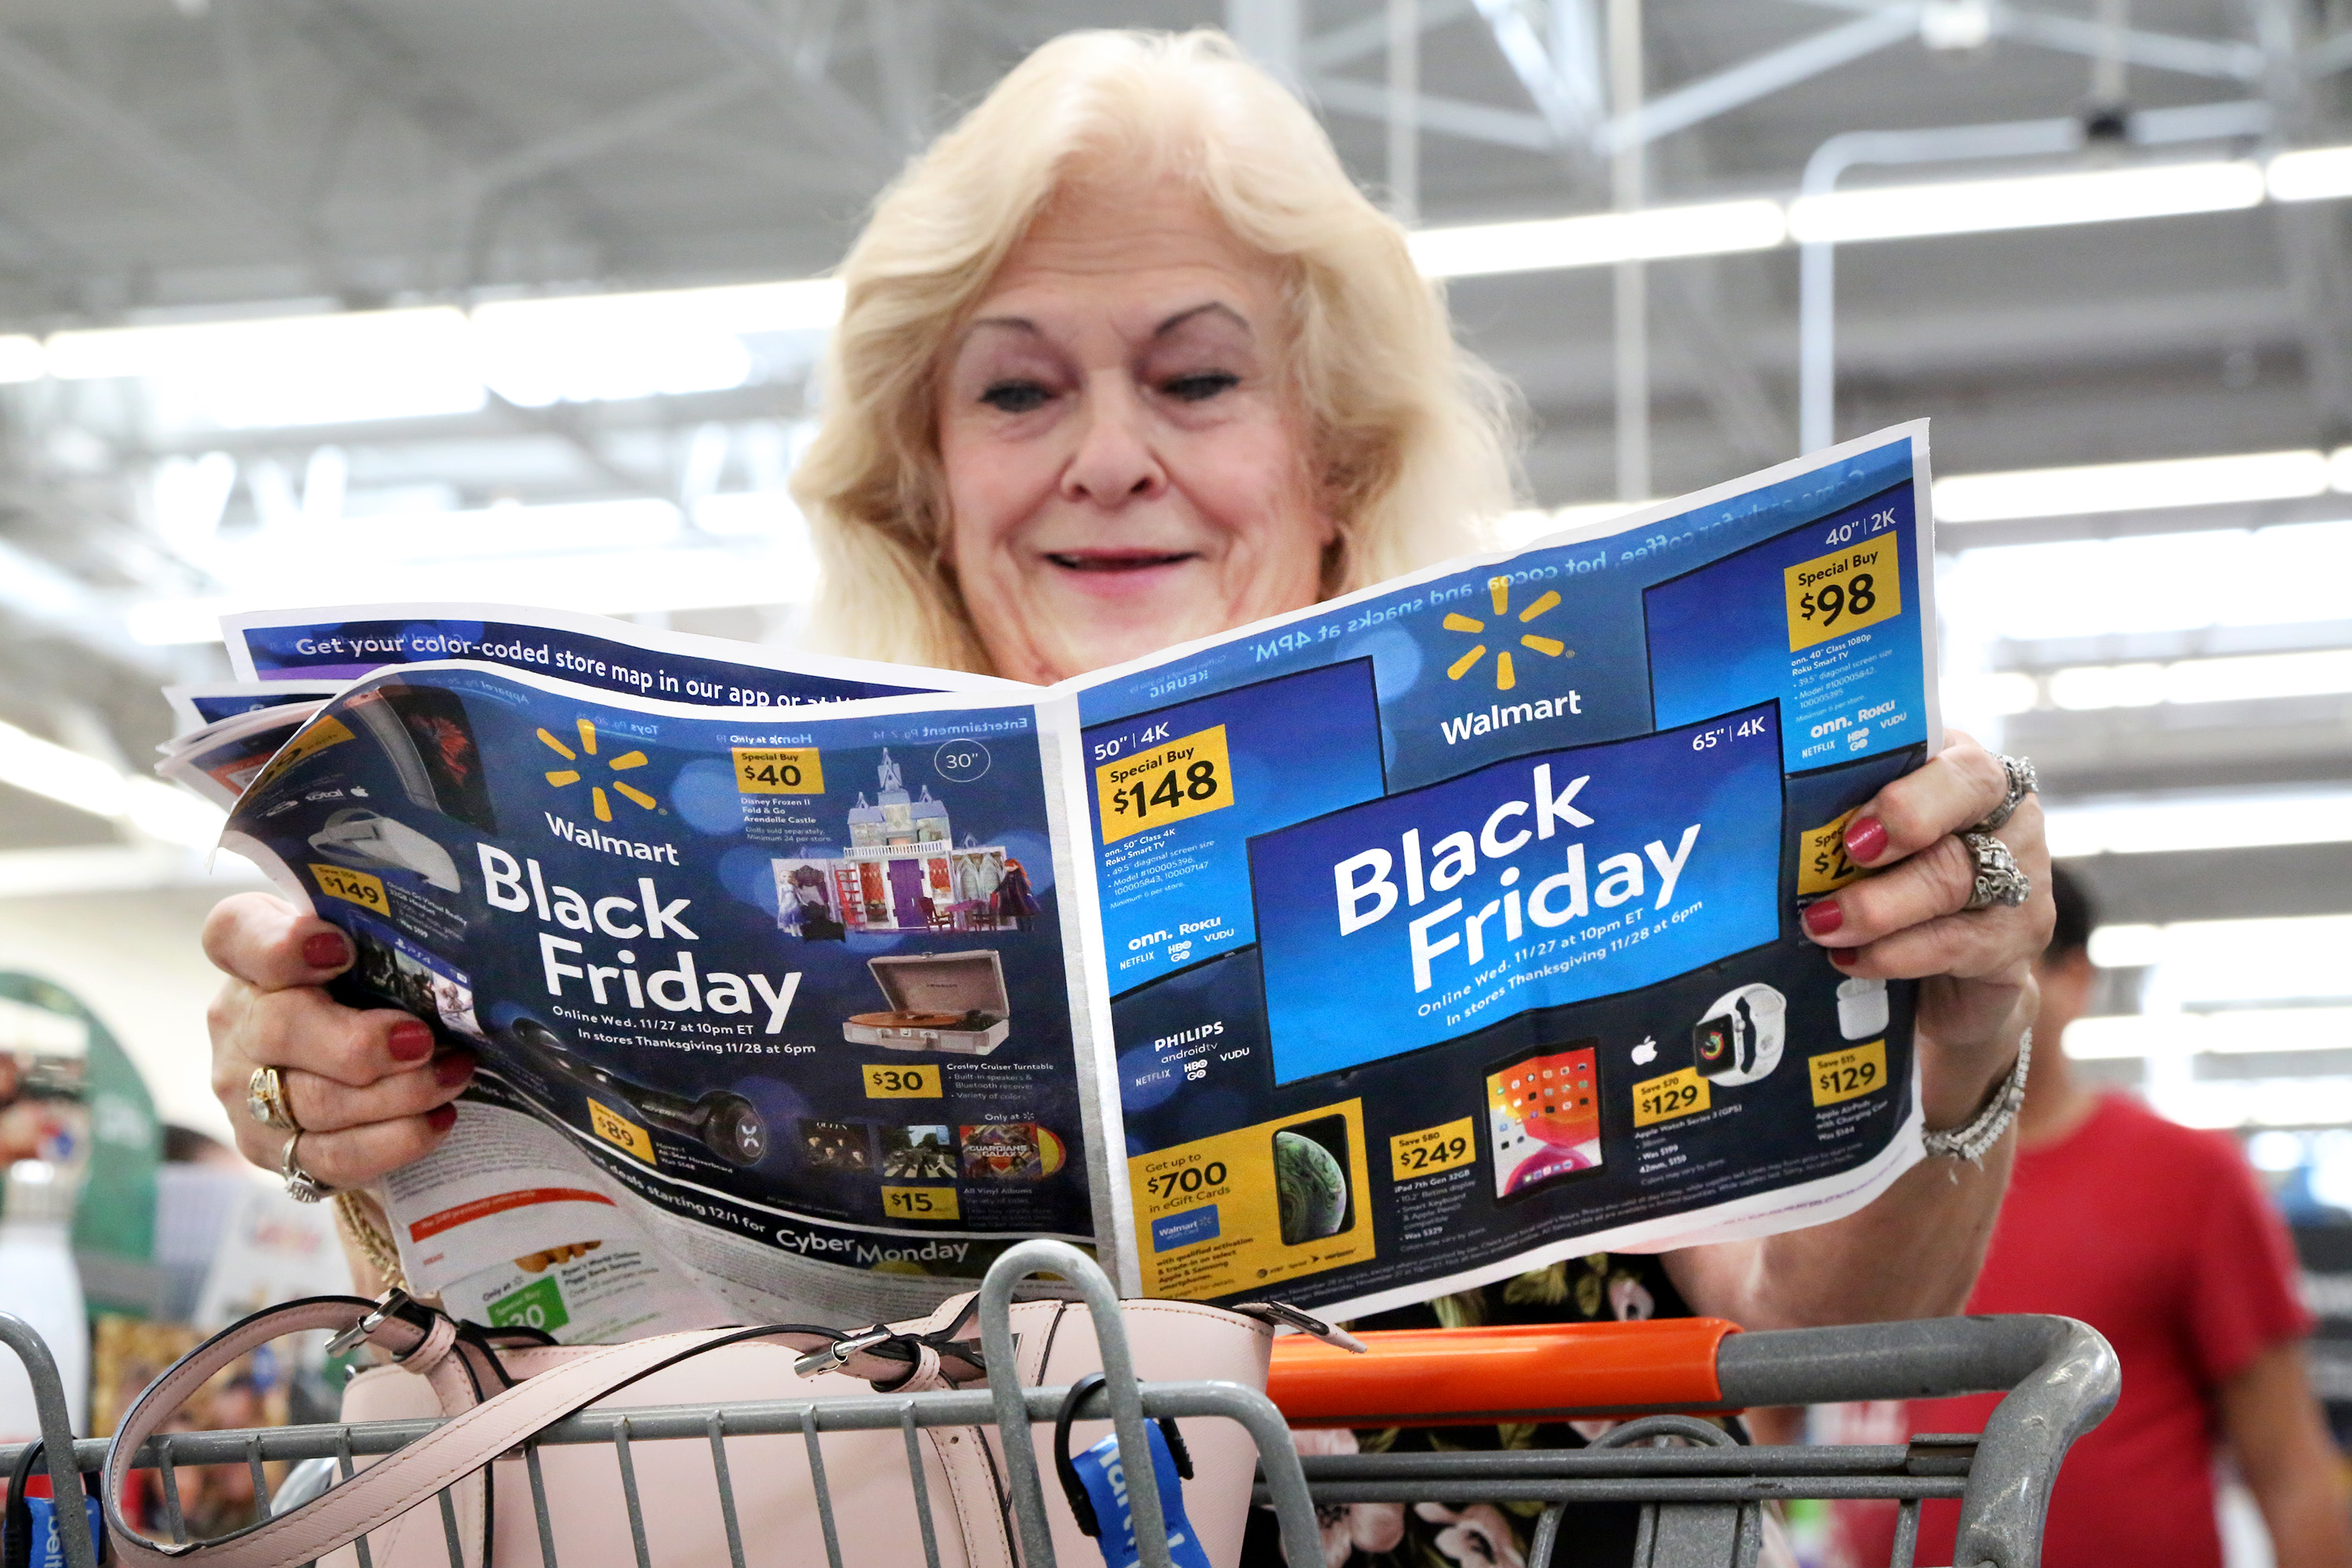 Walmart Stores Will Close On Thanksgiving So No Early Black Friday